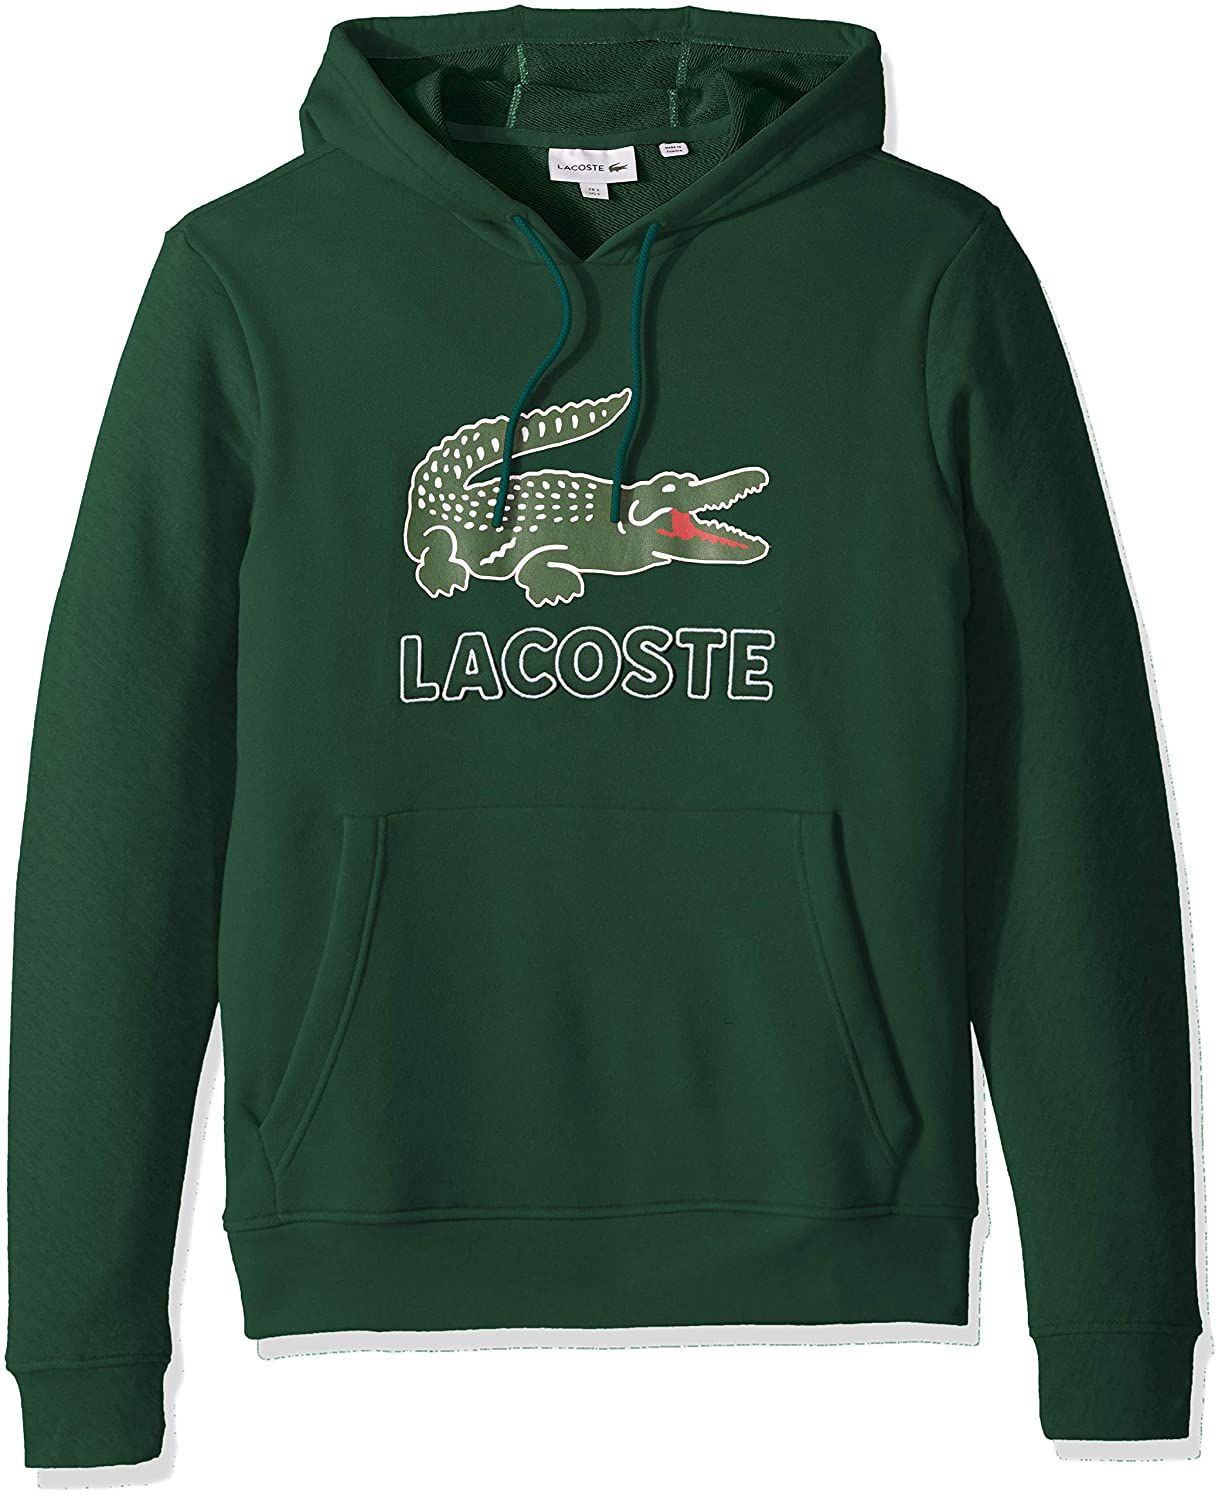 Lacoste Mens Long Sleeve Graphic Croc Brushed Fleece Jersey Hoodie